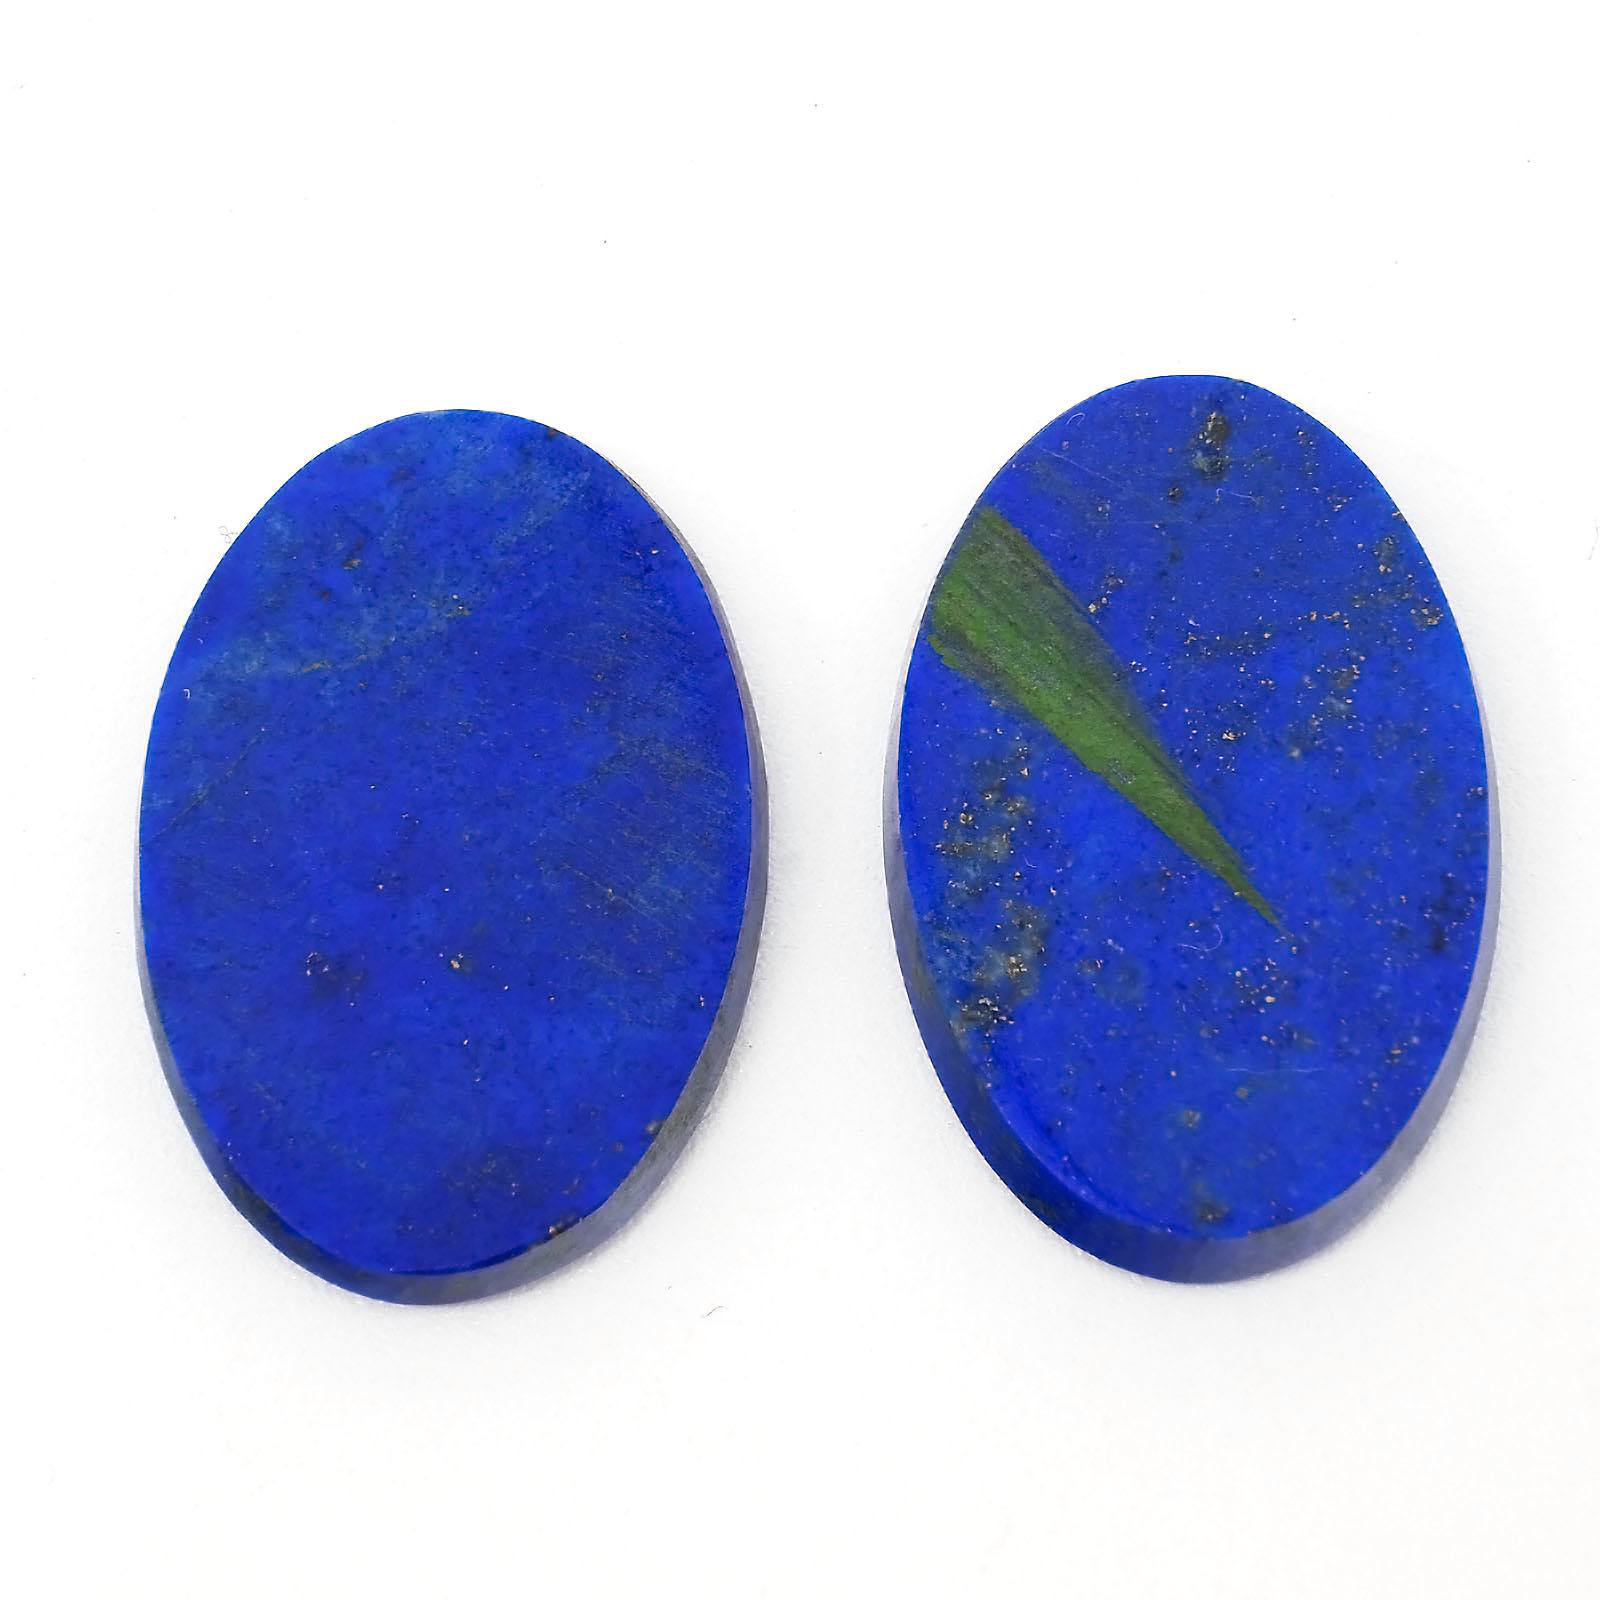 'Two Flat Cabochons of Lapis Lazuli 21mm by 15mm'